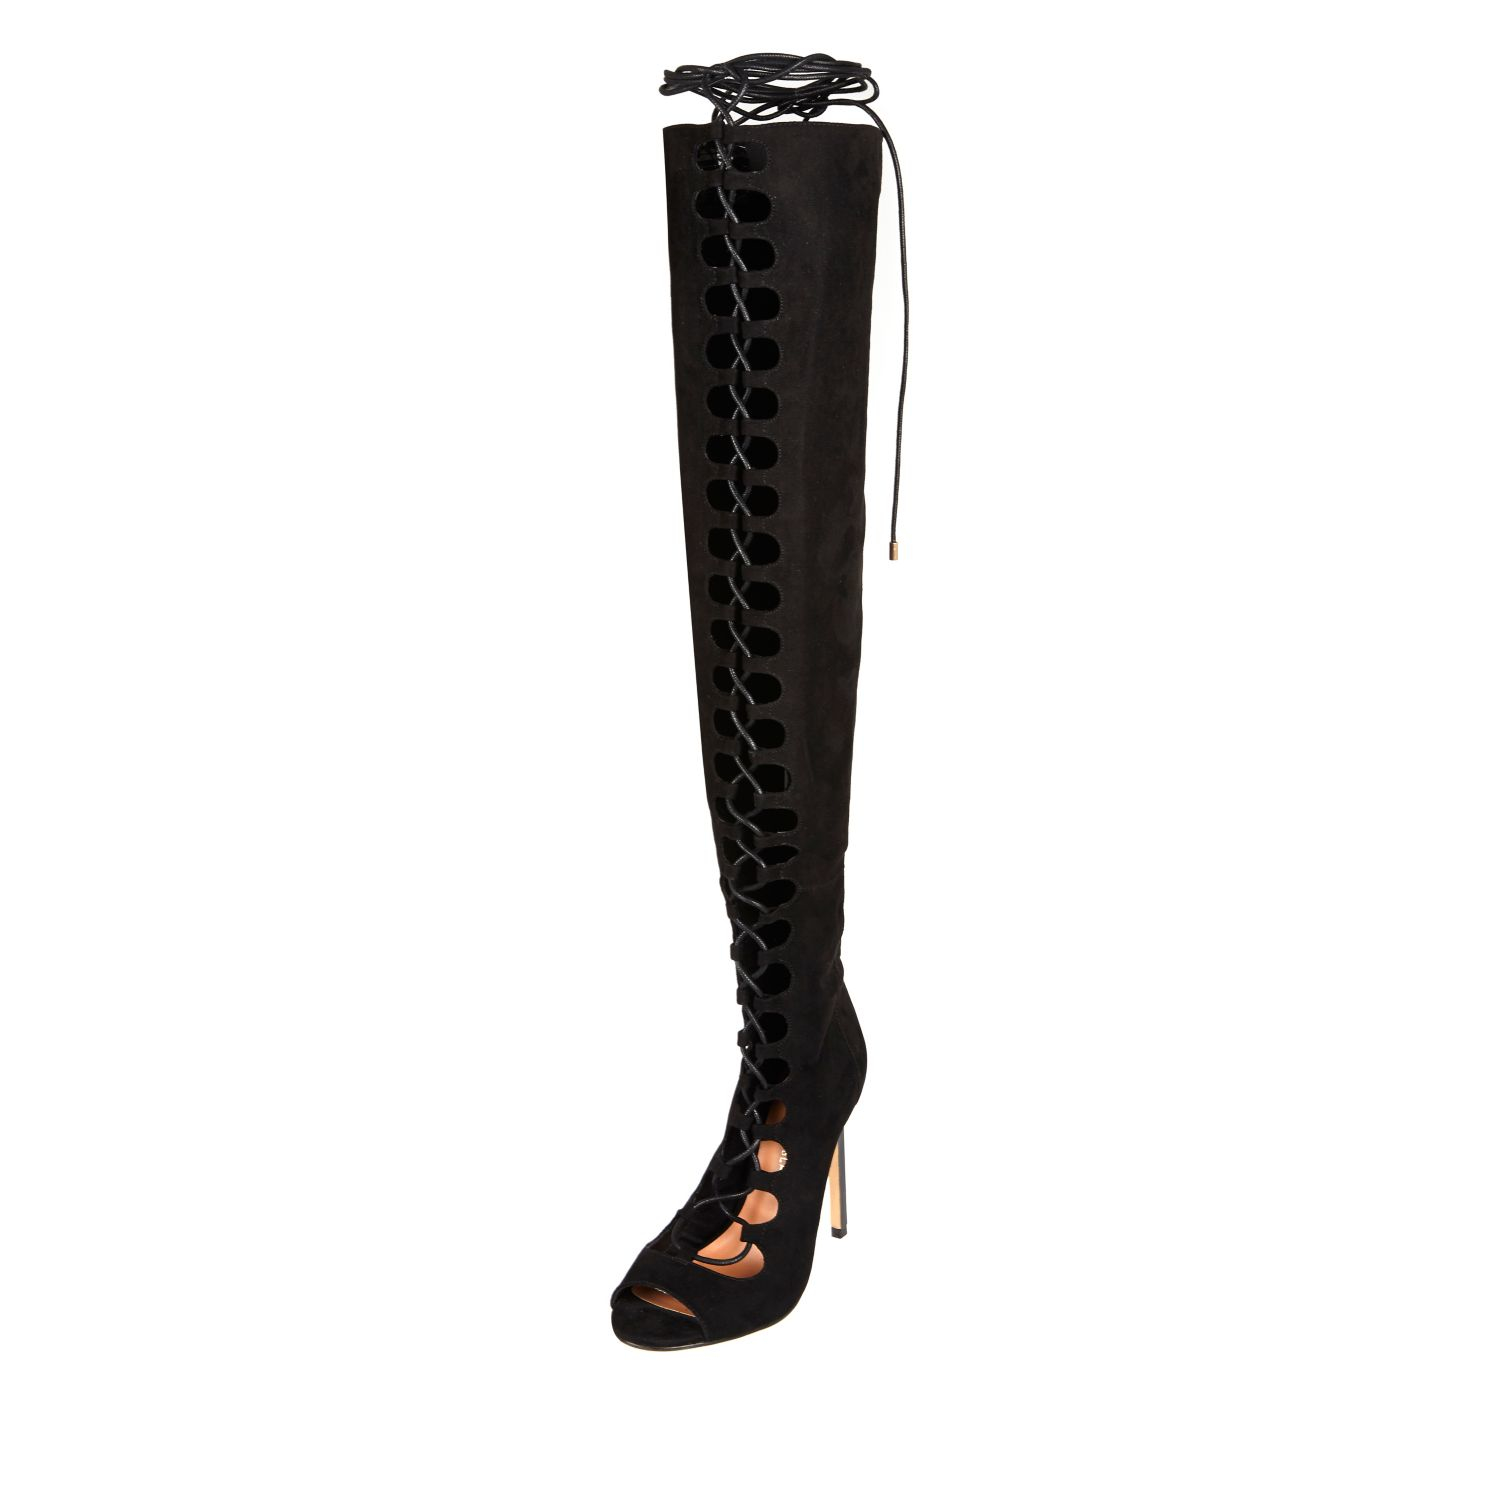 River island Black Lace-up Over The Knee Boots in Black | Lyst